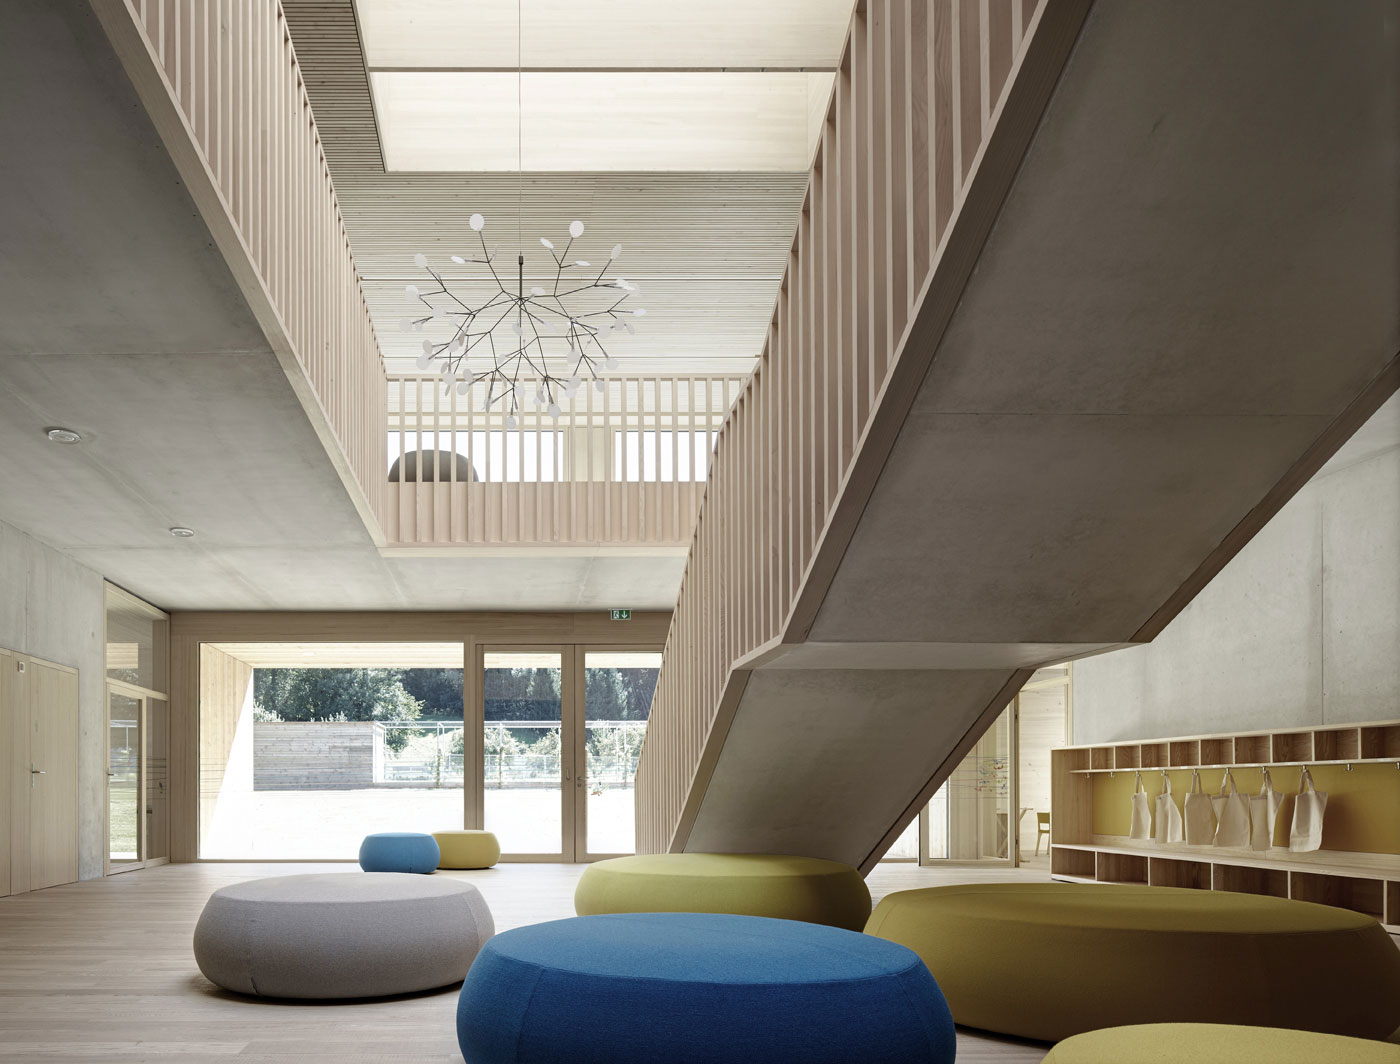 Kindergarten Susi Weigel by Bernardo Bader Architects | Yellowtrace